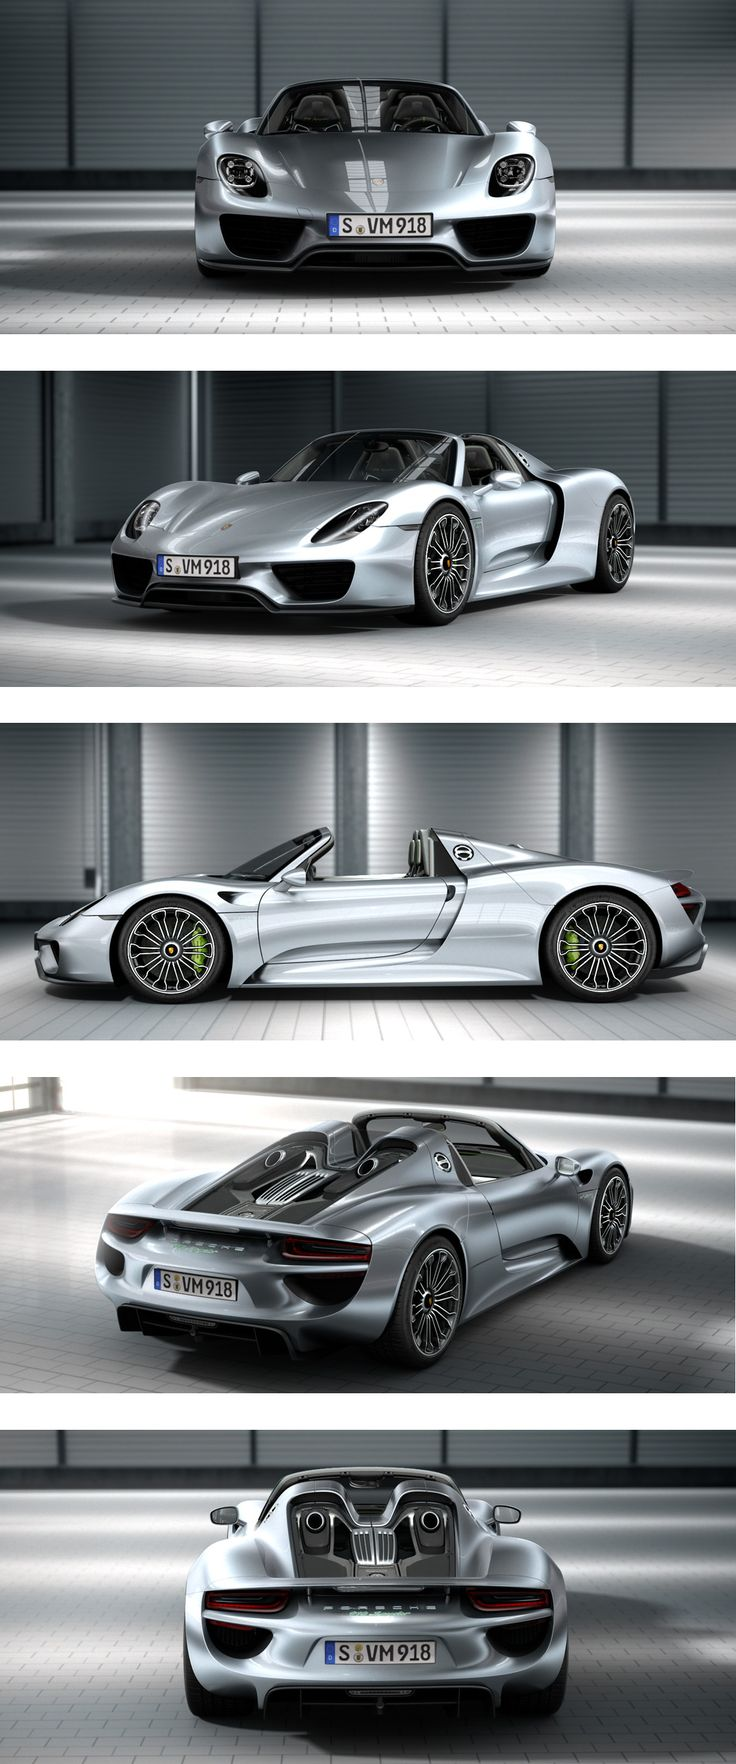 2013 Porsche 918 Spyder | Power: 887hp | 0-60mph: 2.8s | Top speed: 211mph (340km/h) #Porsche #918